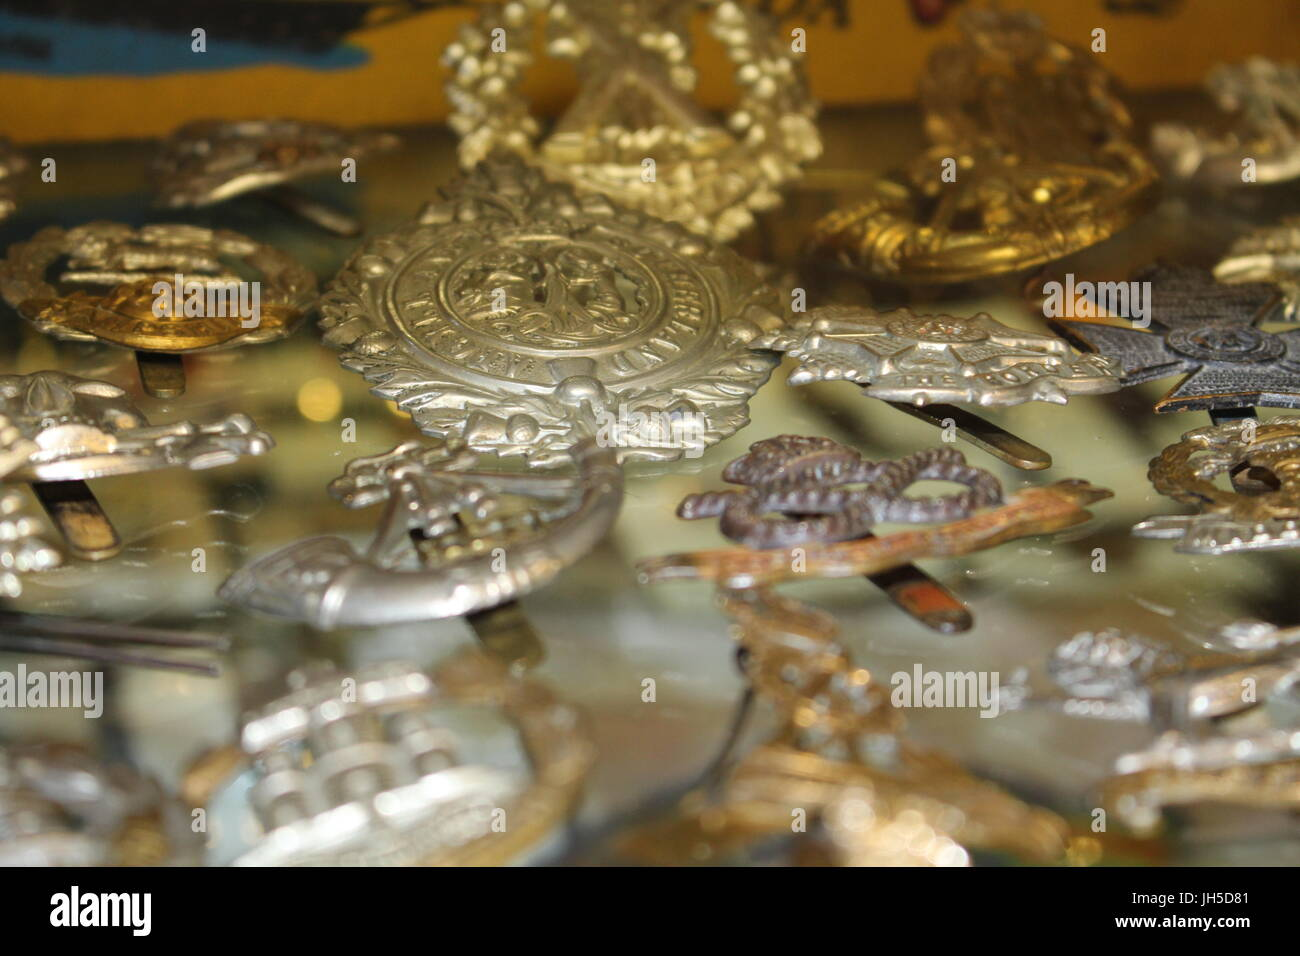 collection of medals, collection of badges, antiques, antique items, collectable items, military paraphernalia - Stock Image